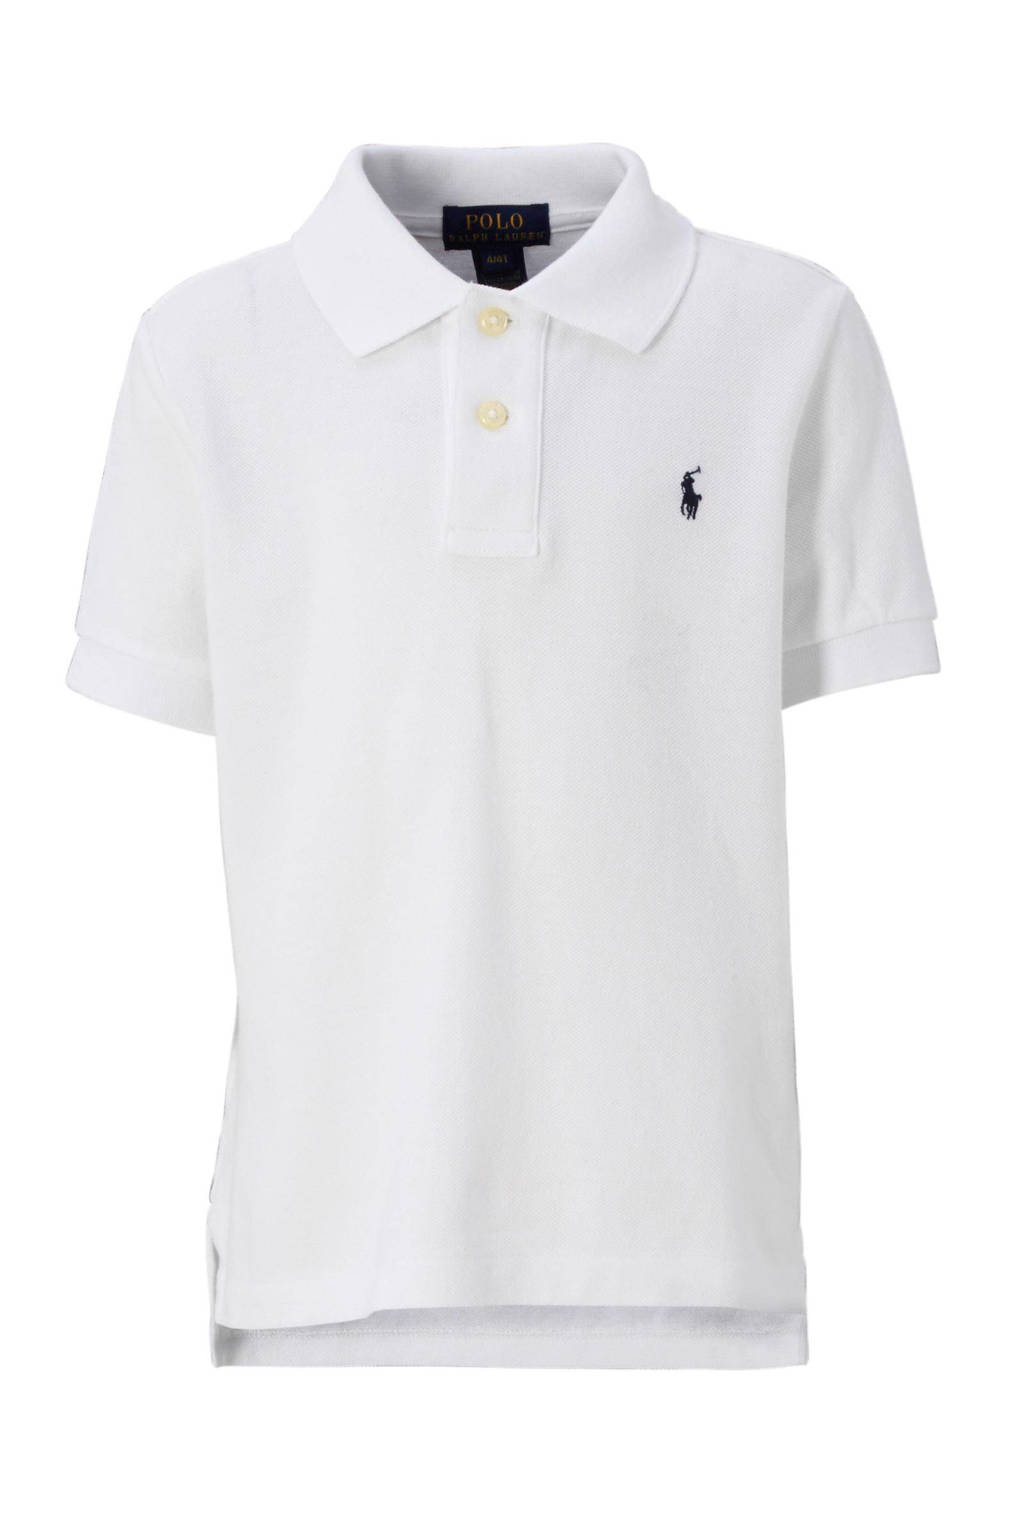 POLO Ralph Lauren polo, Wit